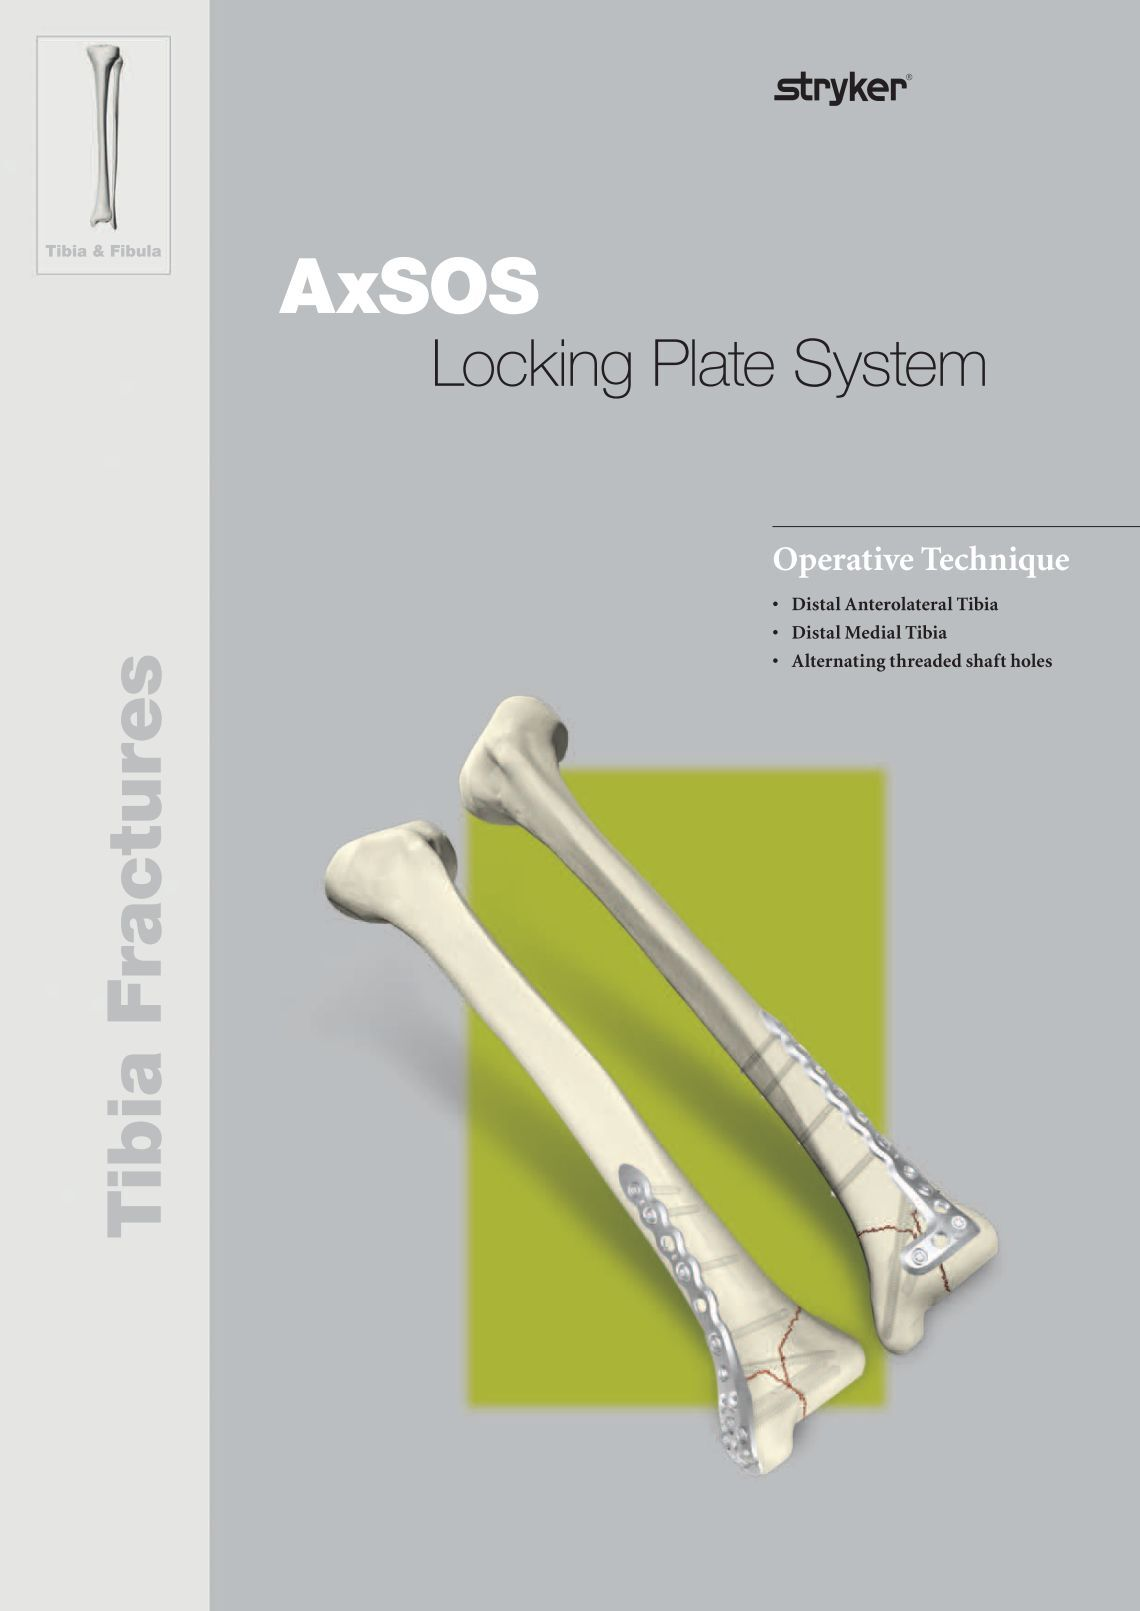 stryker osteosynthesis Stryker osteosynthesis devices and instruments it offers guidance that you should heed, but as with any such technical guide, each surgeon must consider.